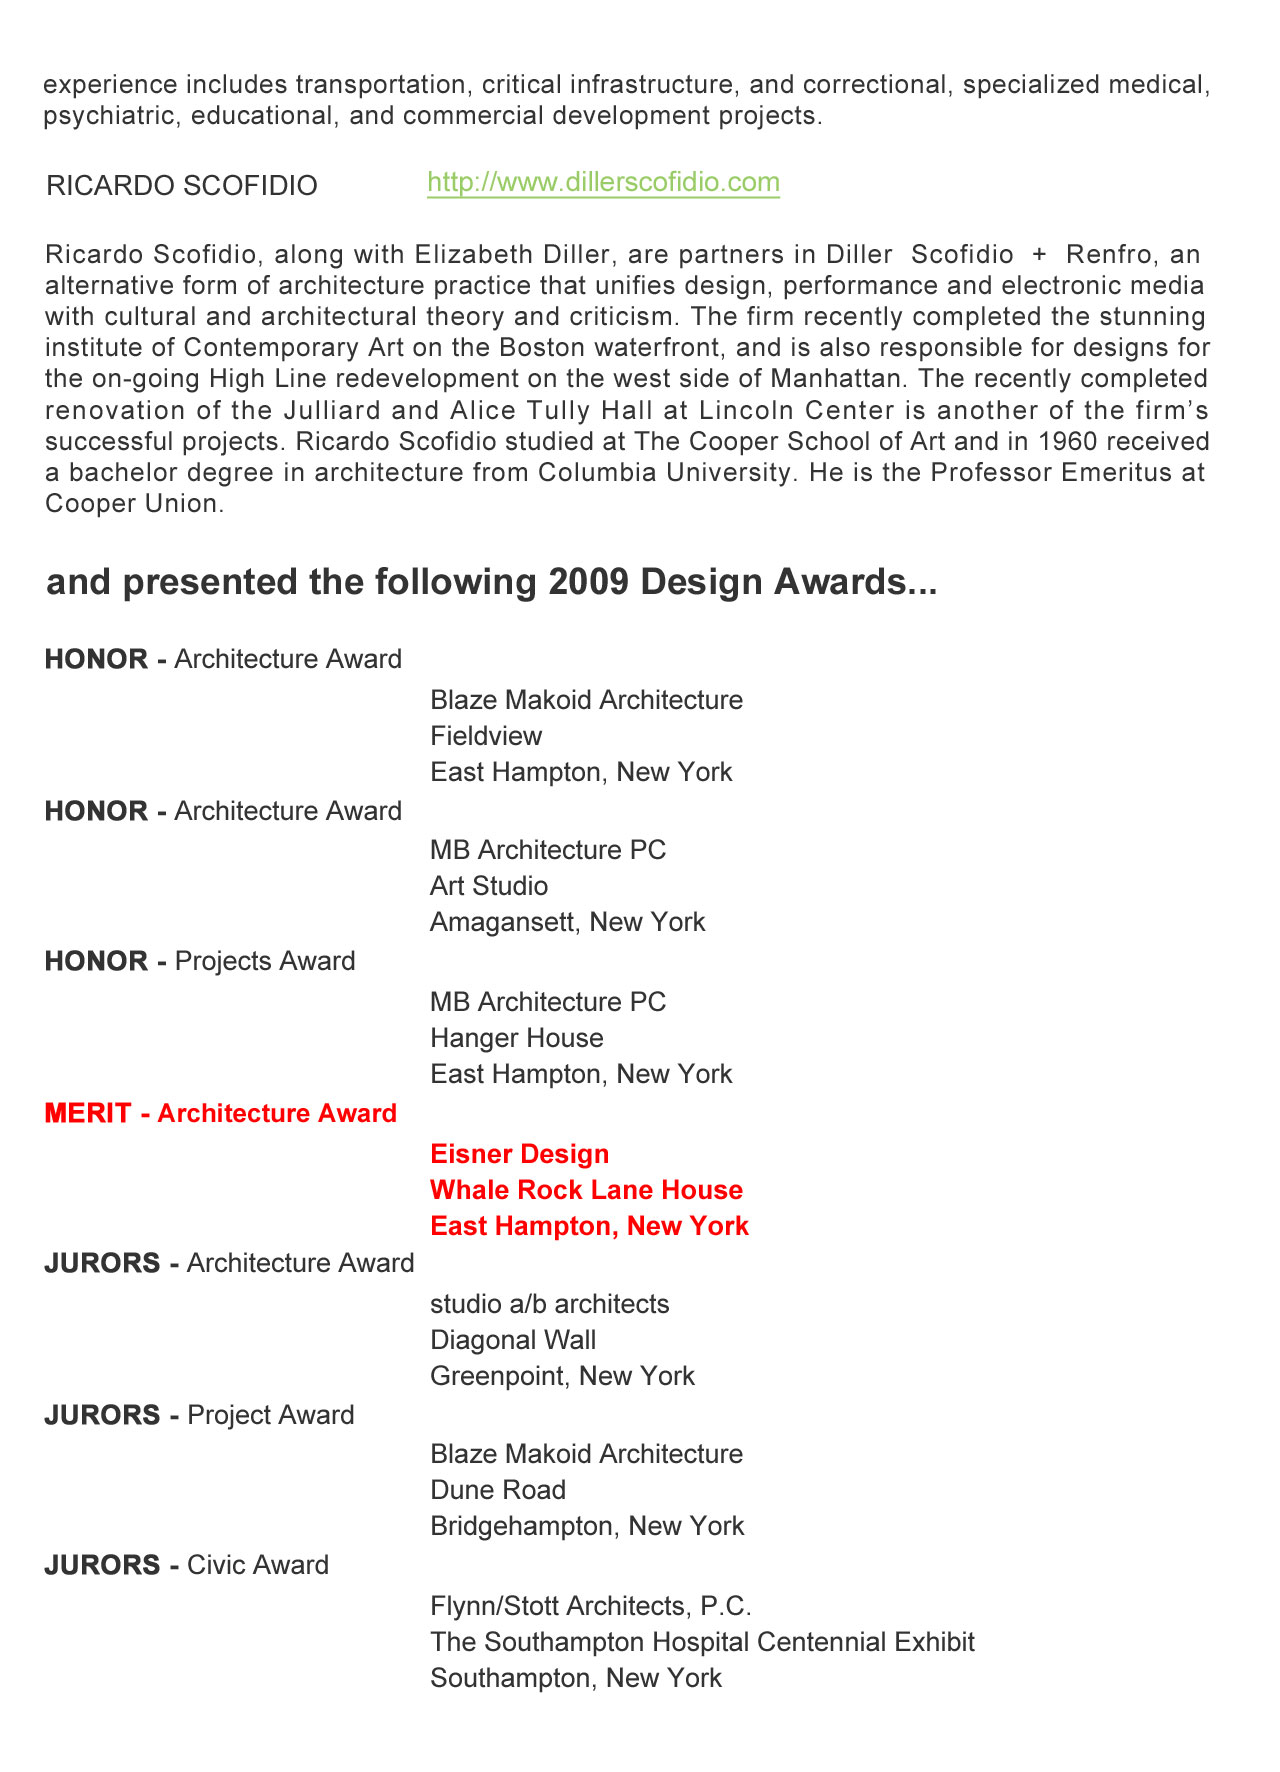 00_Awards_AIA-Peconic-Award-04_web_w1280